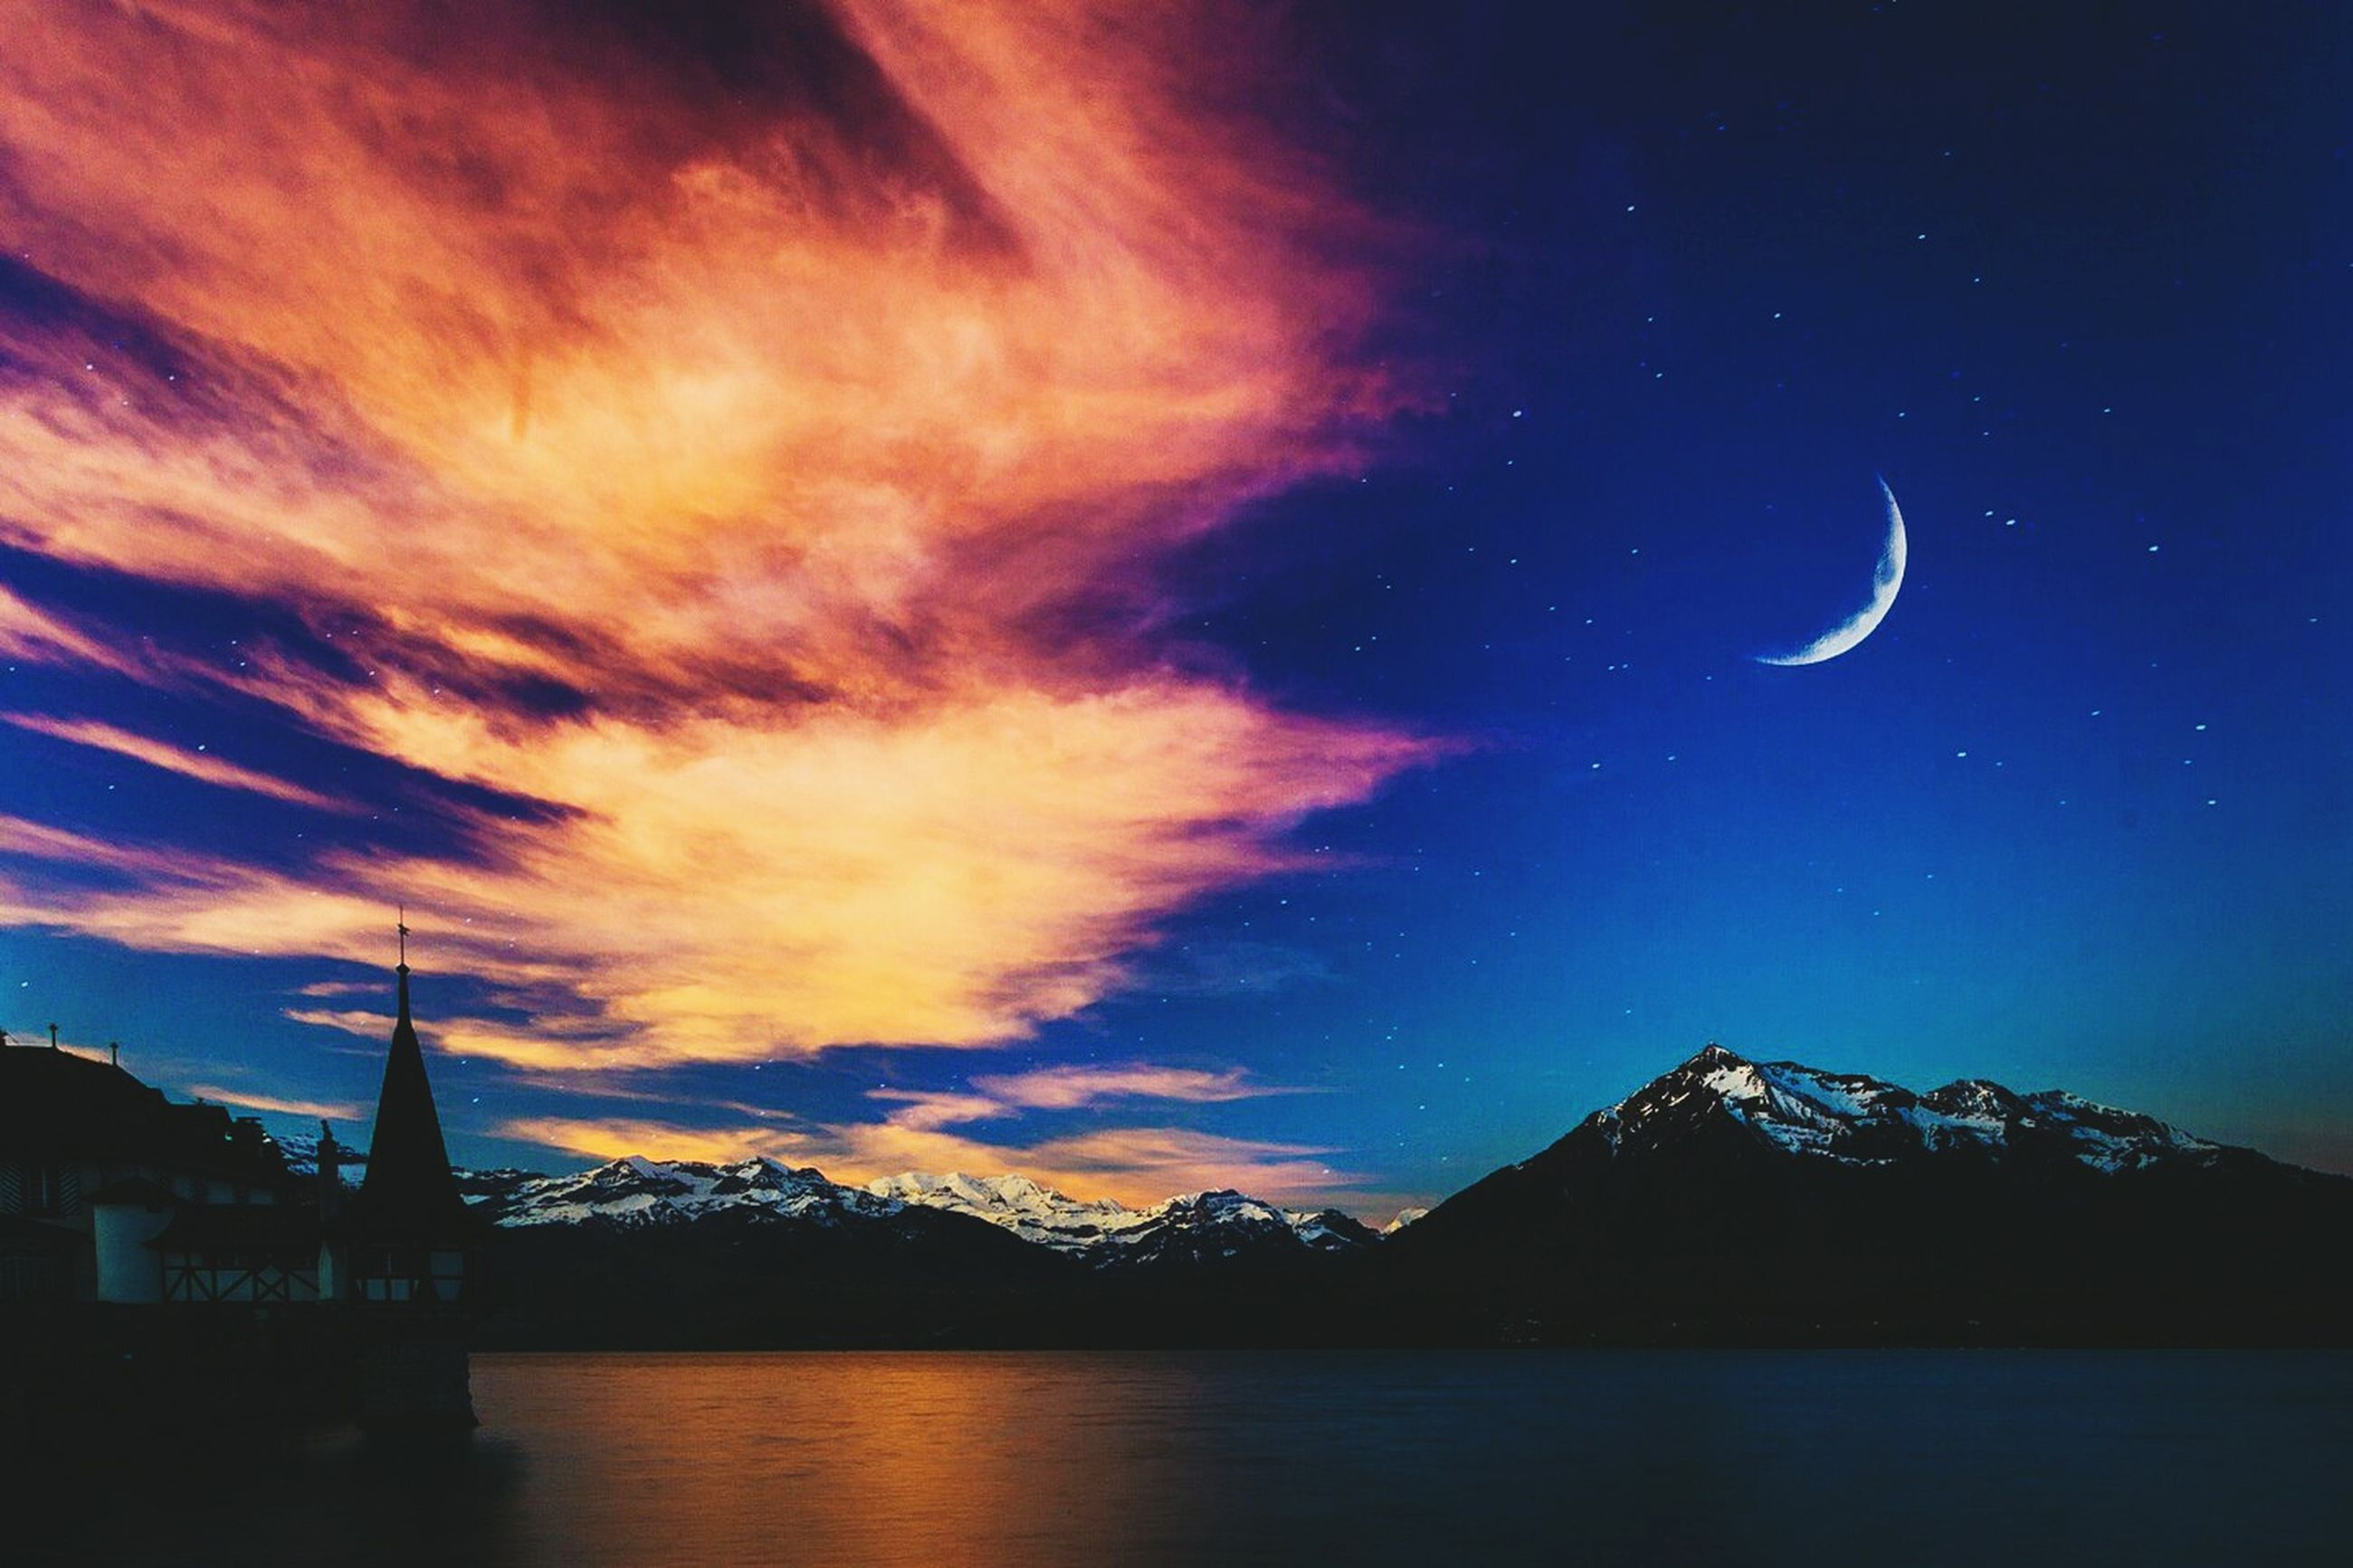 sky, water, scenics, waterfront, beauty in nature, tranquil scene, mountain, tranquility, built structure, night, architecture, nature, silhouette, dusk, idyllic, illuminated, cloud - sky, sea, river, mountain range